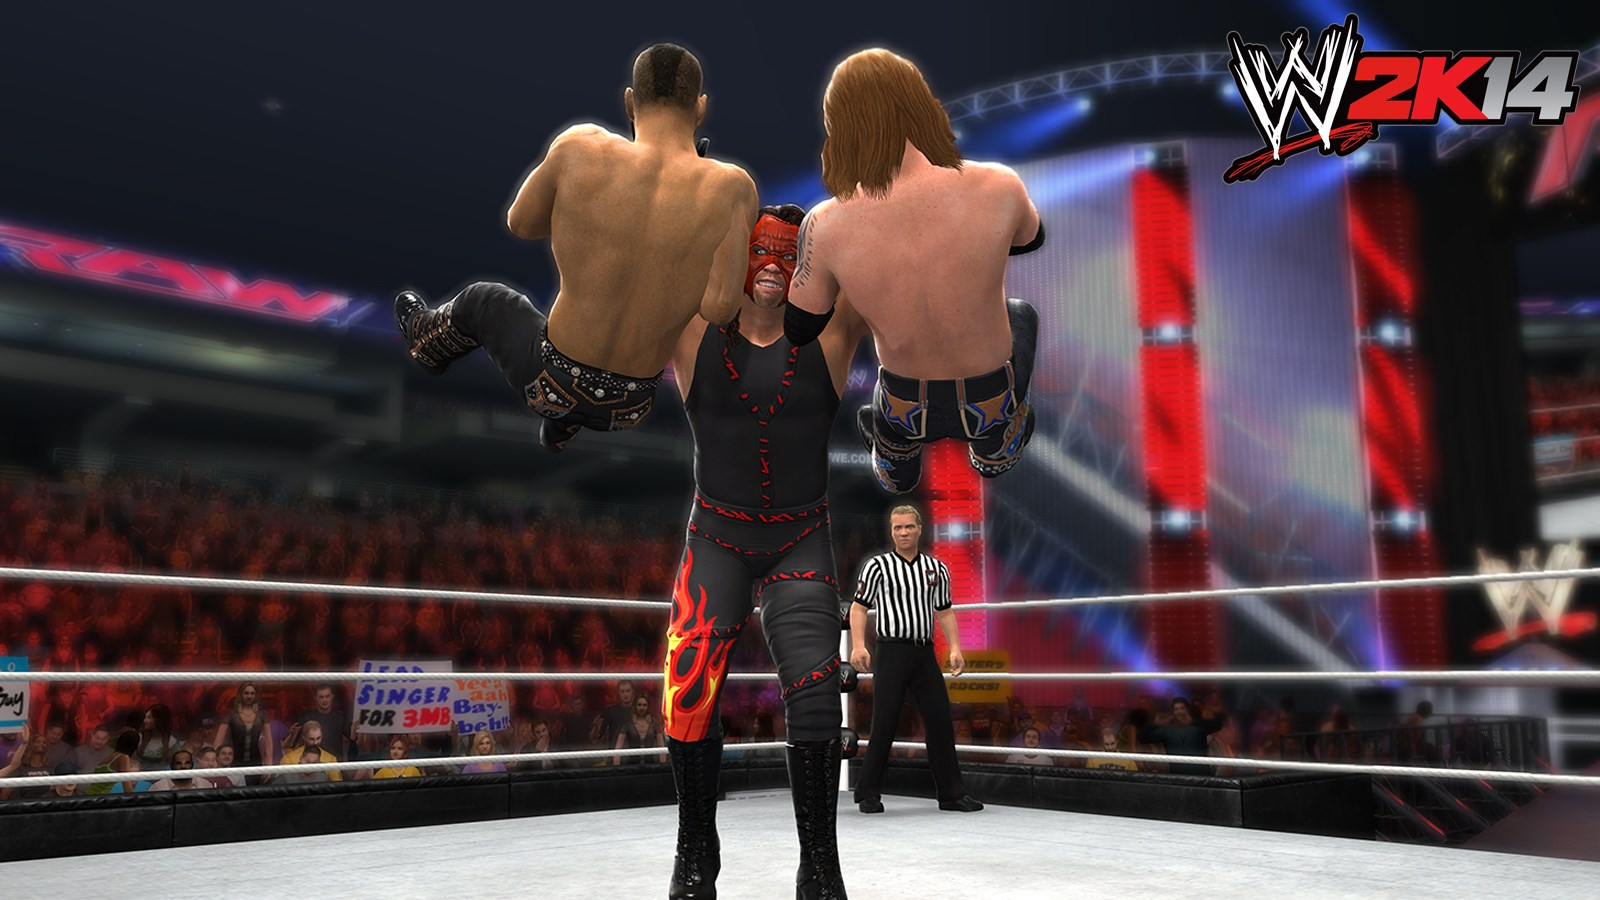 Wwe2k14_review_a_1600